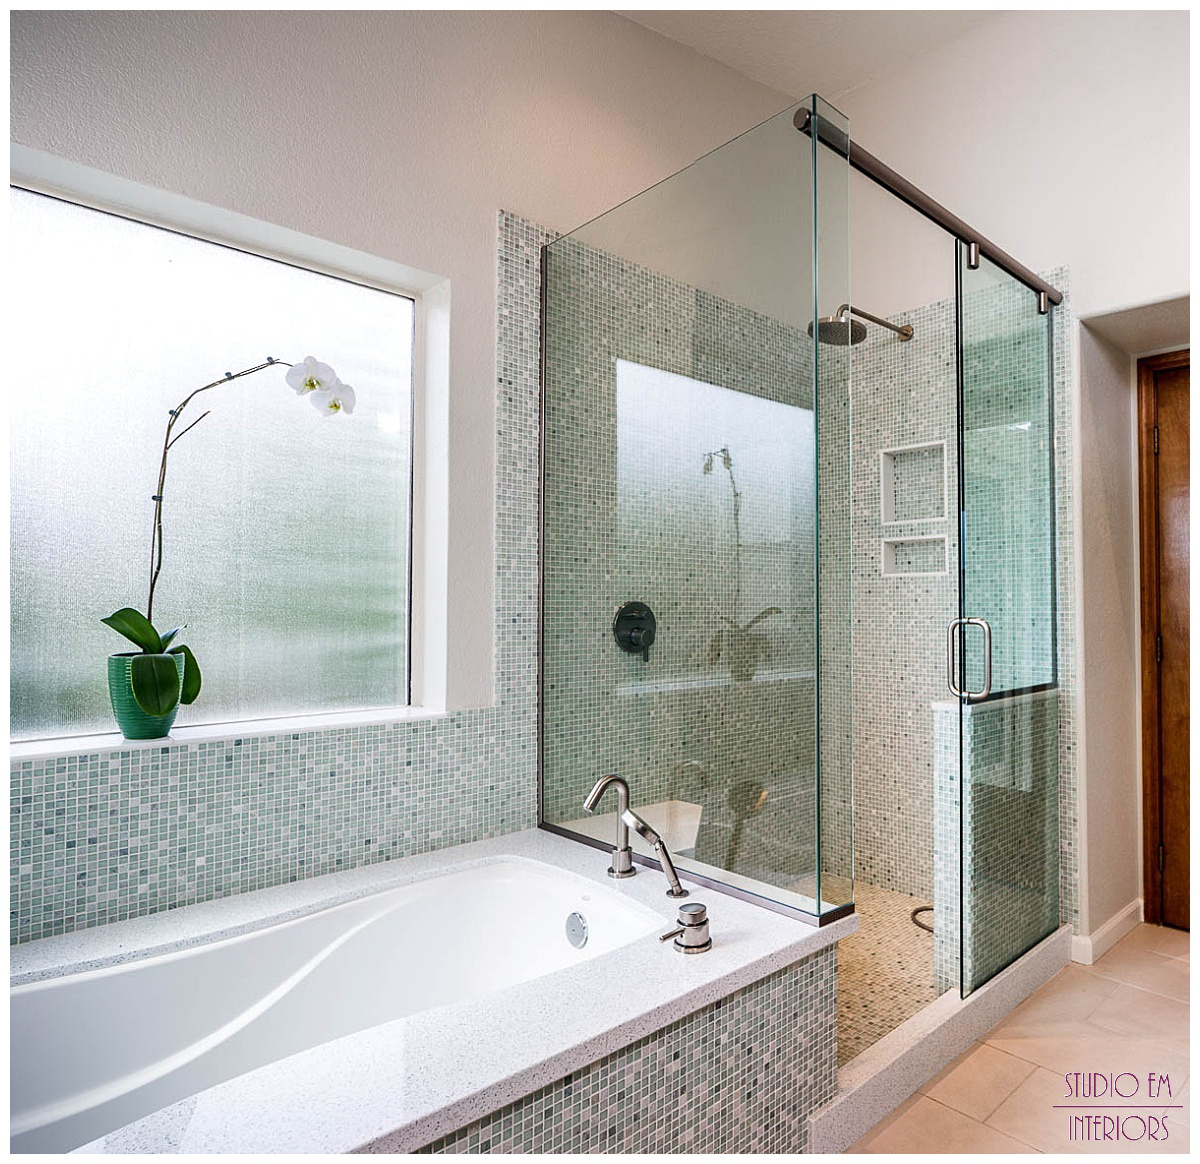 Chandler Spa Suite - Shower and Tub - Studio Em Interiors